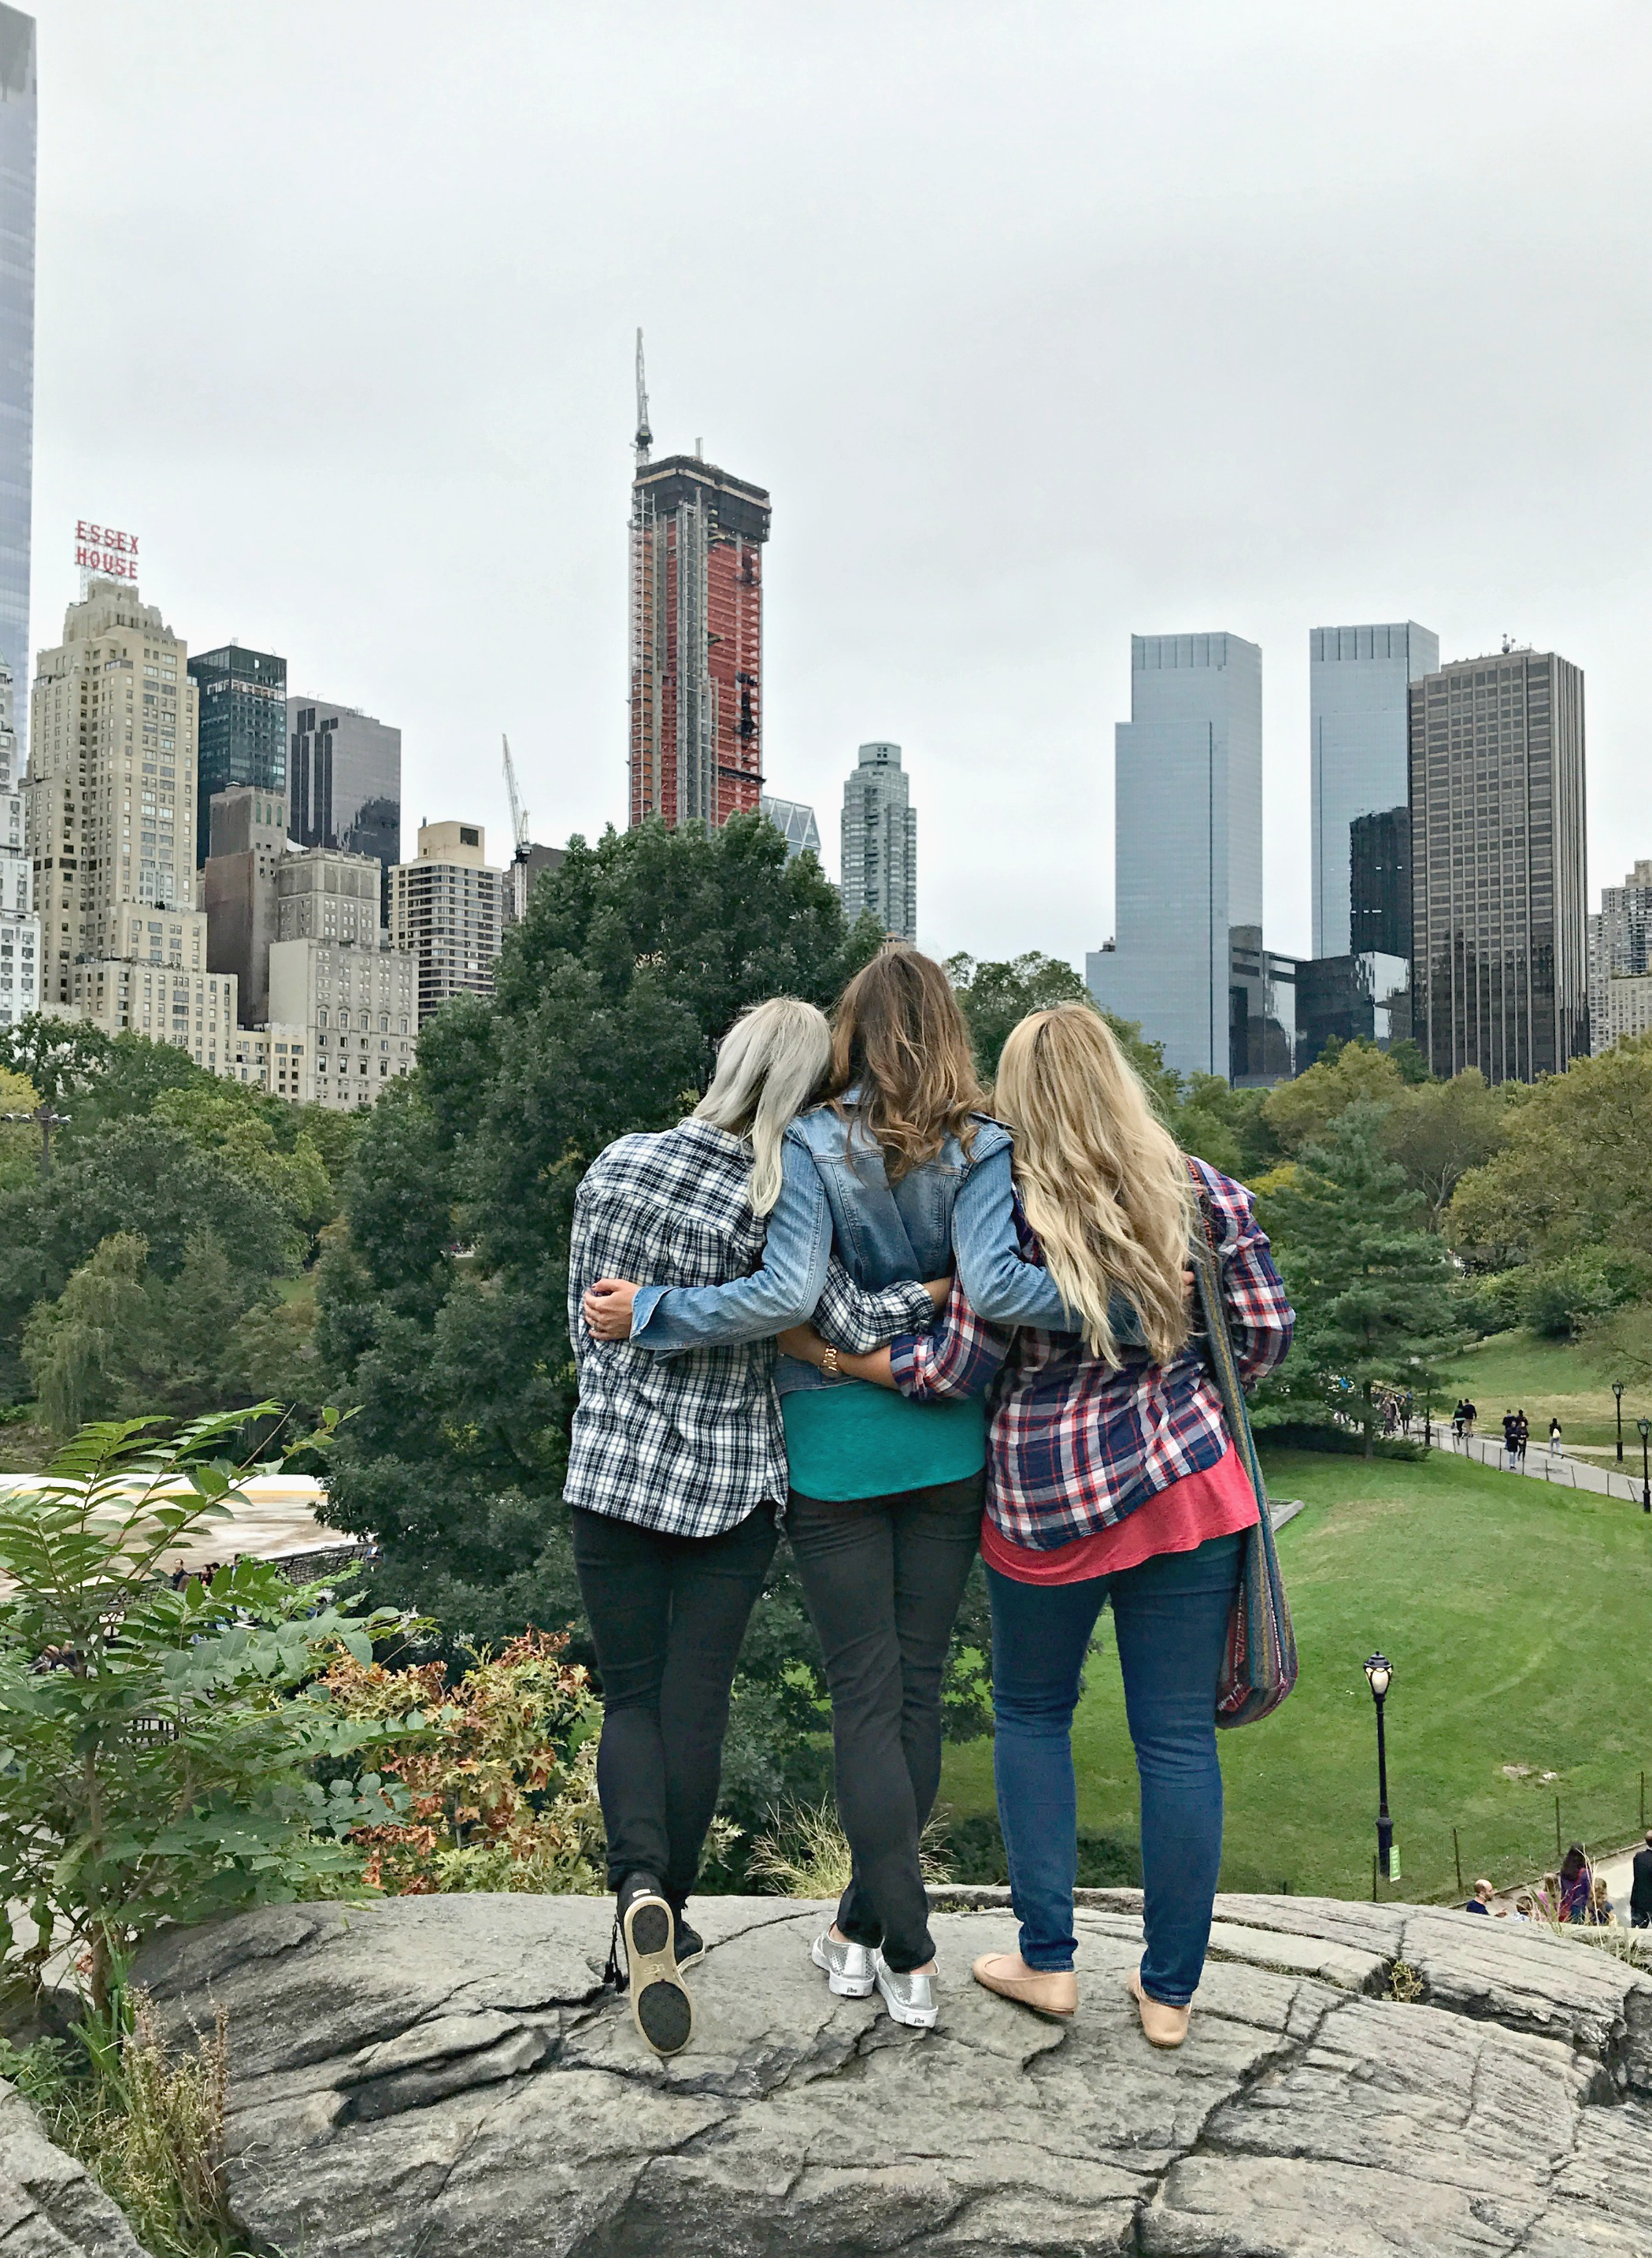 central-park-overlook-rock-with-brittany-and-melissa